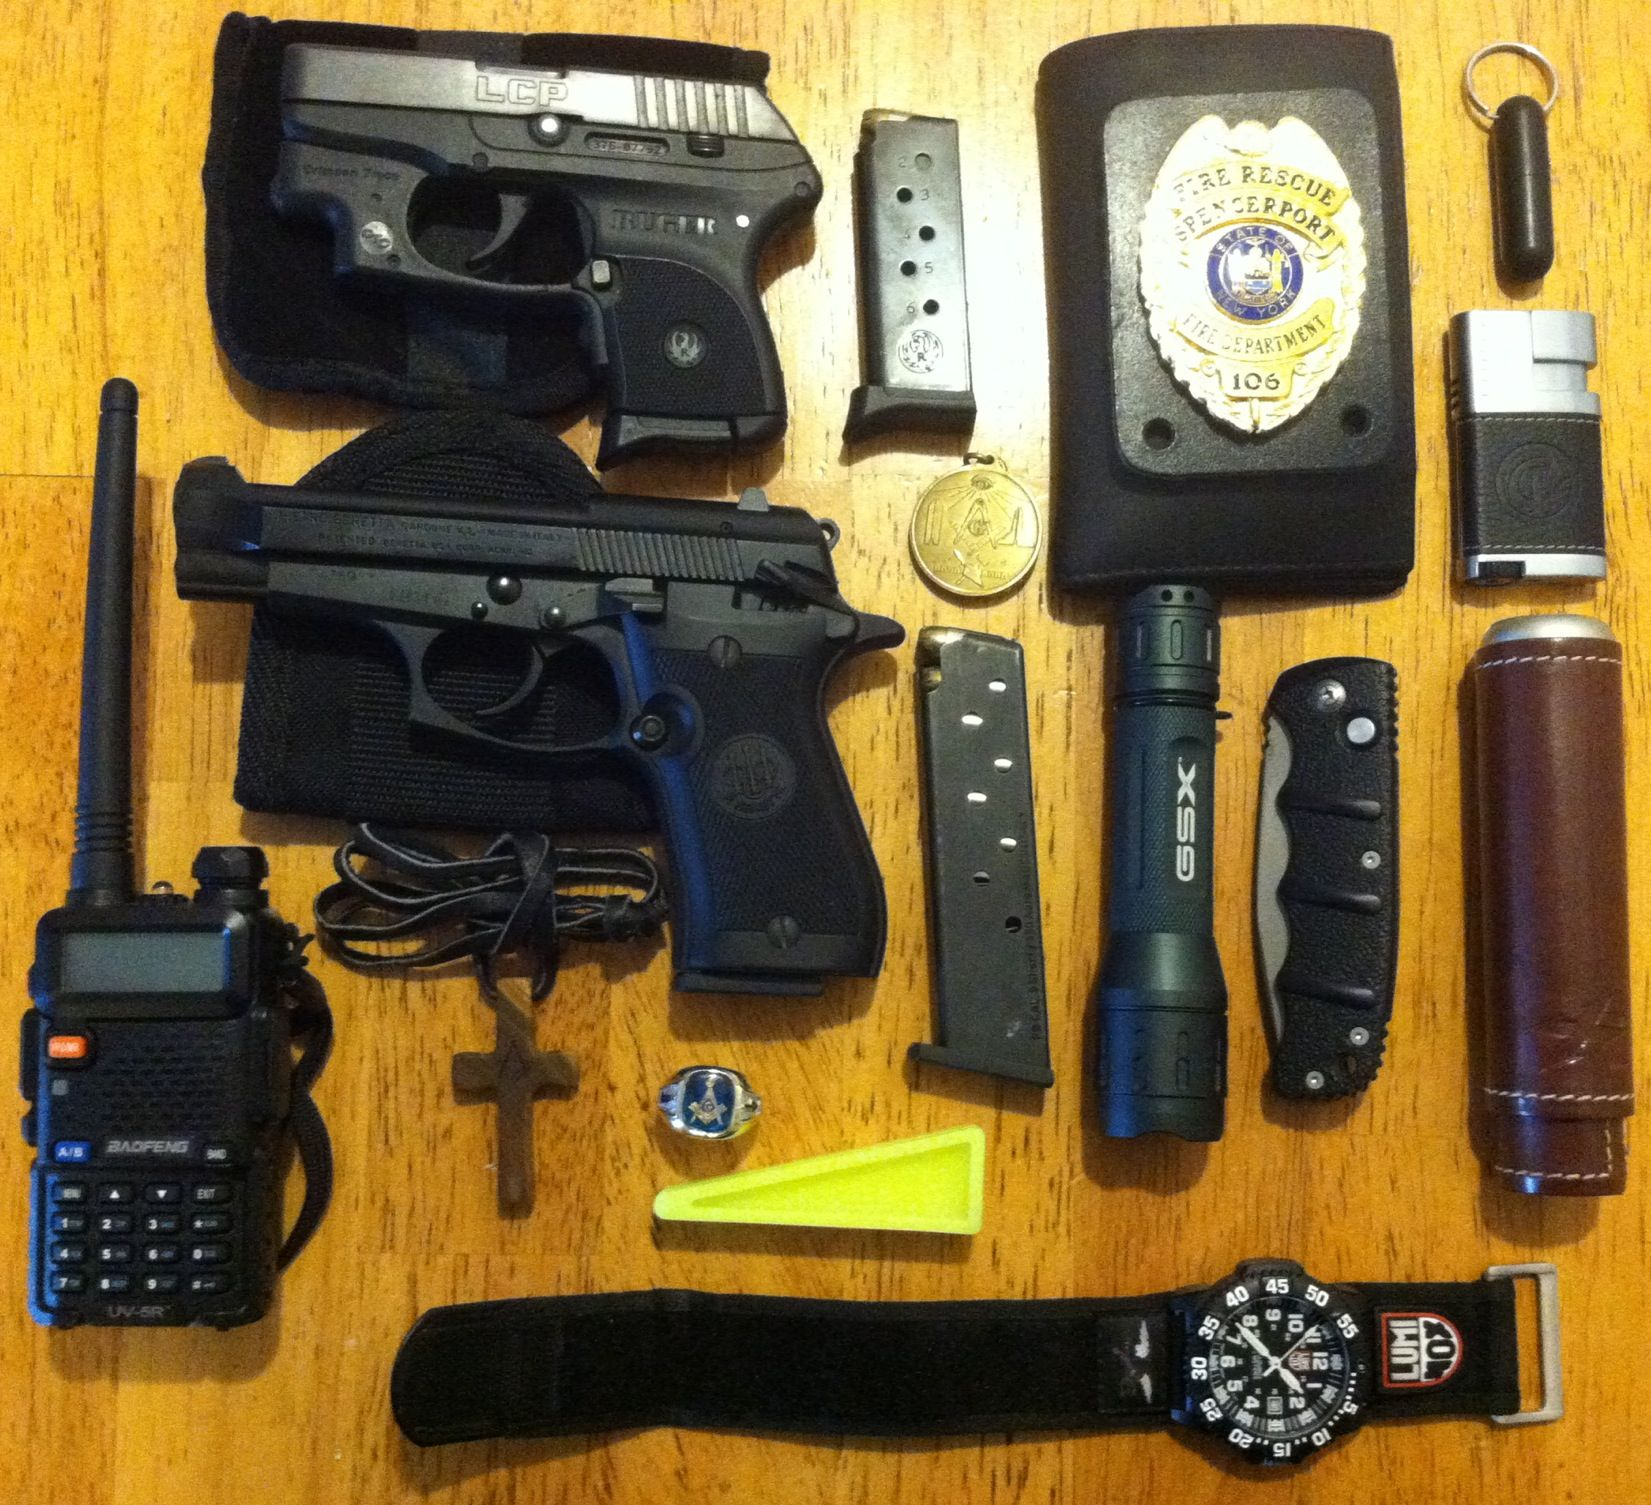 Just an every day off duty carry Beretta 85f with small of